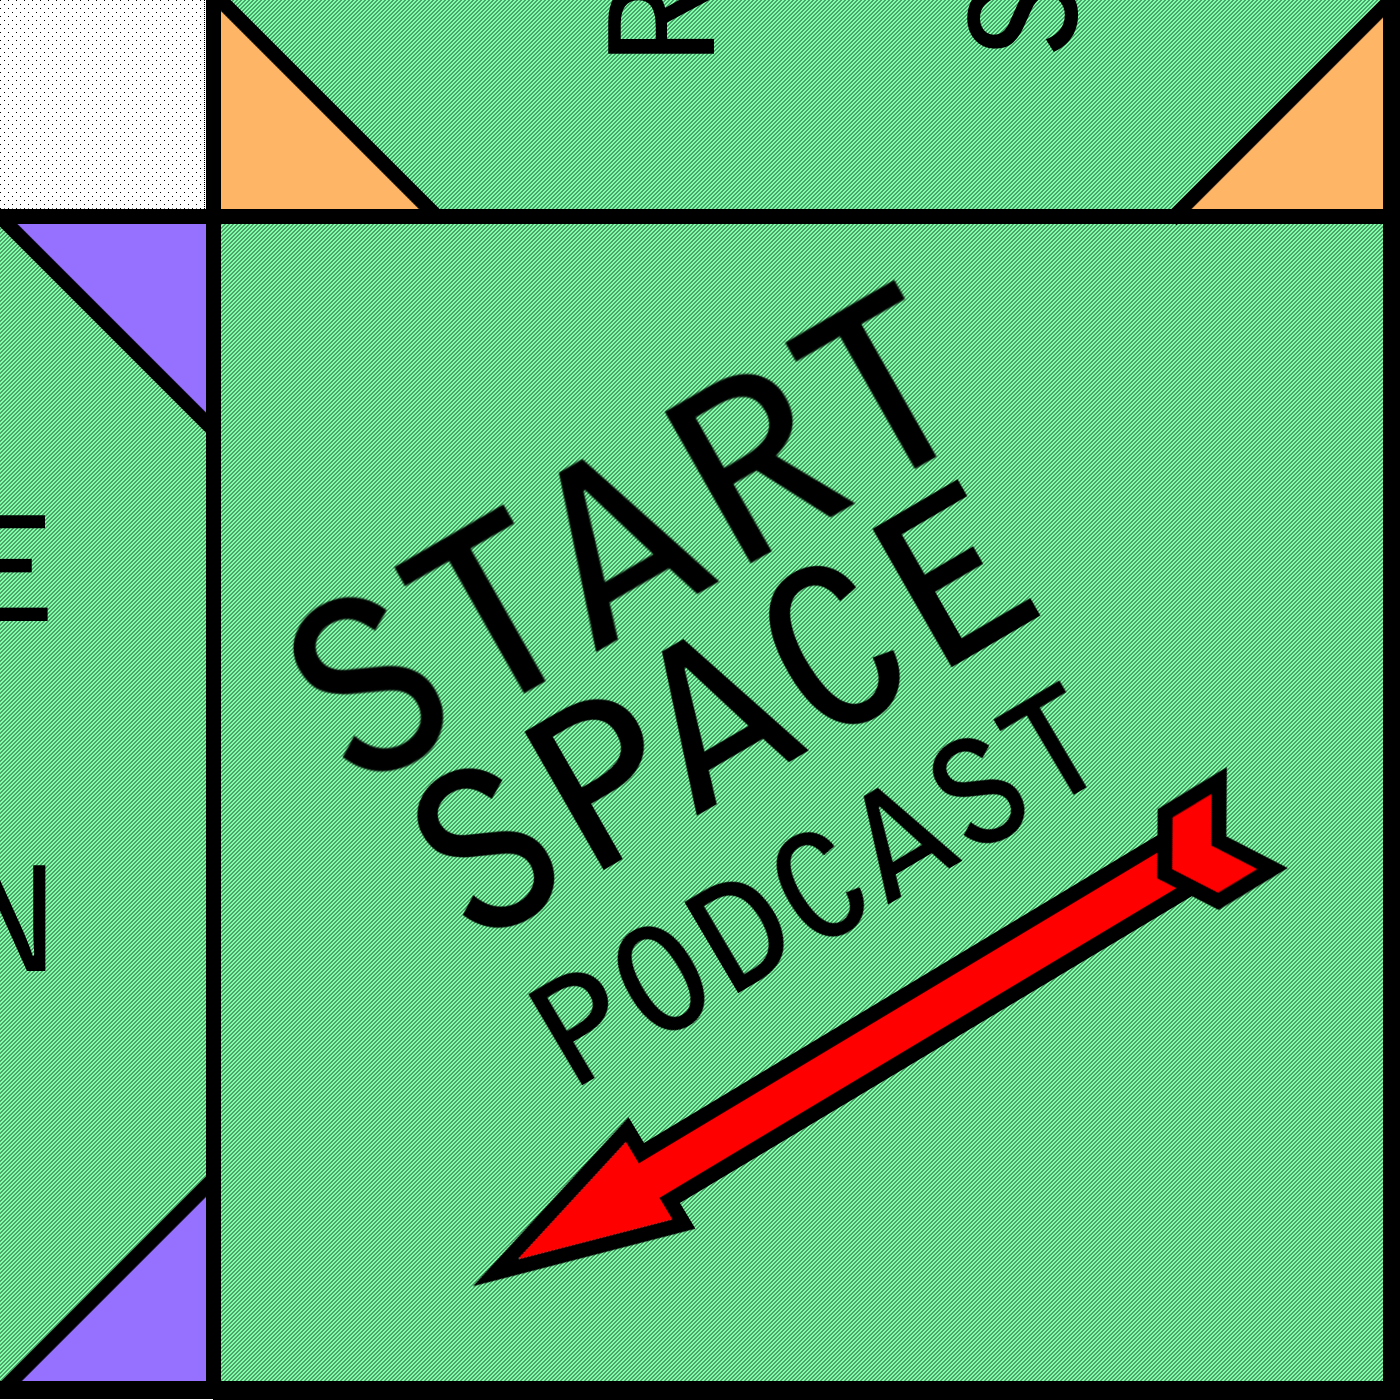 Episode 69 - Build Your Perfect...Board Game and Isle of Skye show art